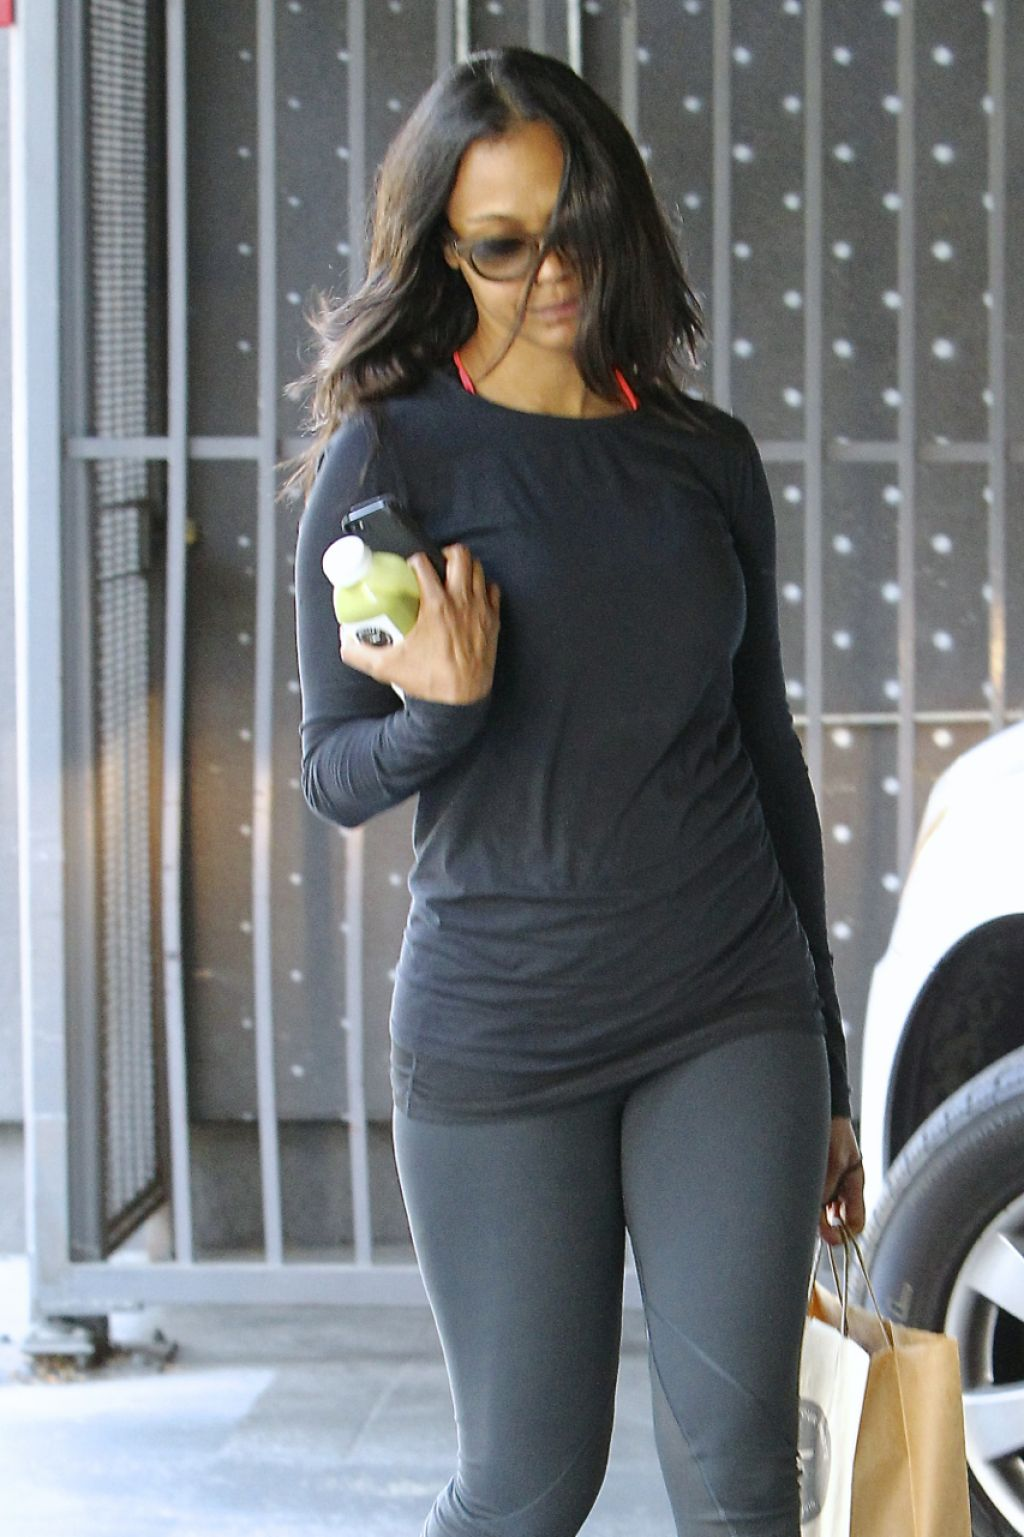 zoe saldana in leggings out in hollywood march 2015